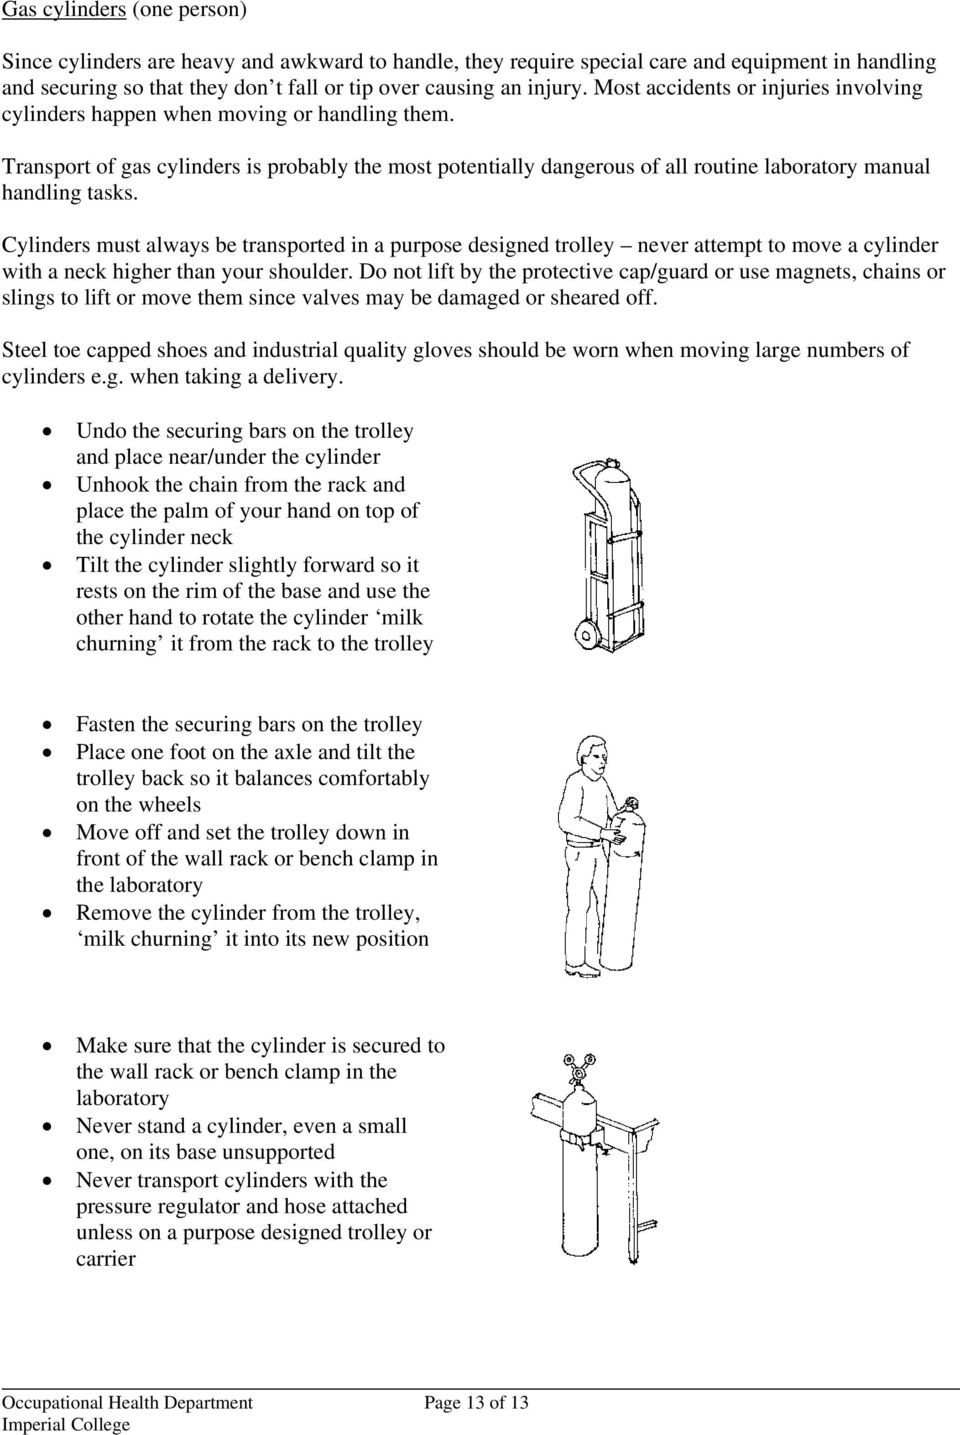 Transport of gas cylinders is probably the most potentially dangerous of all routine laboratory manual handling tasks.